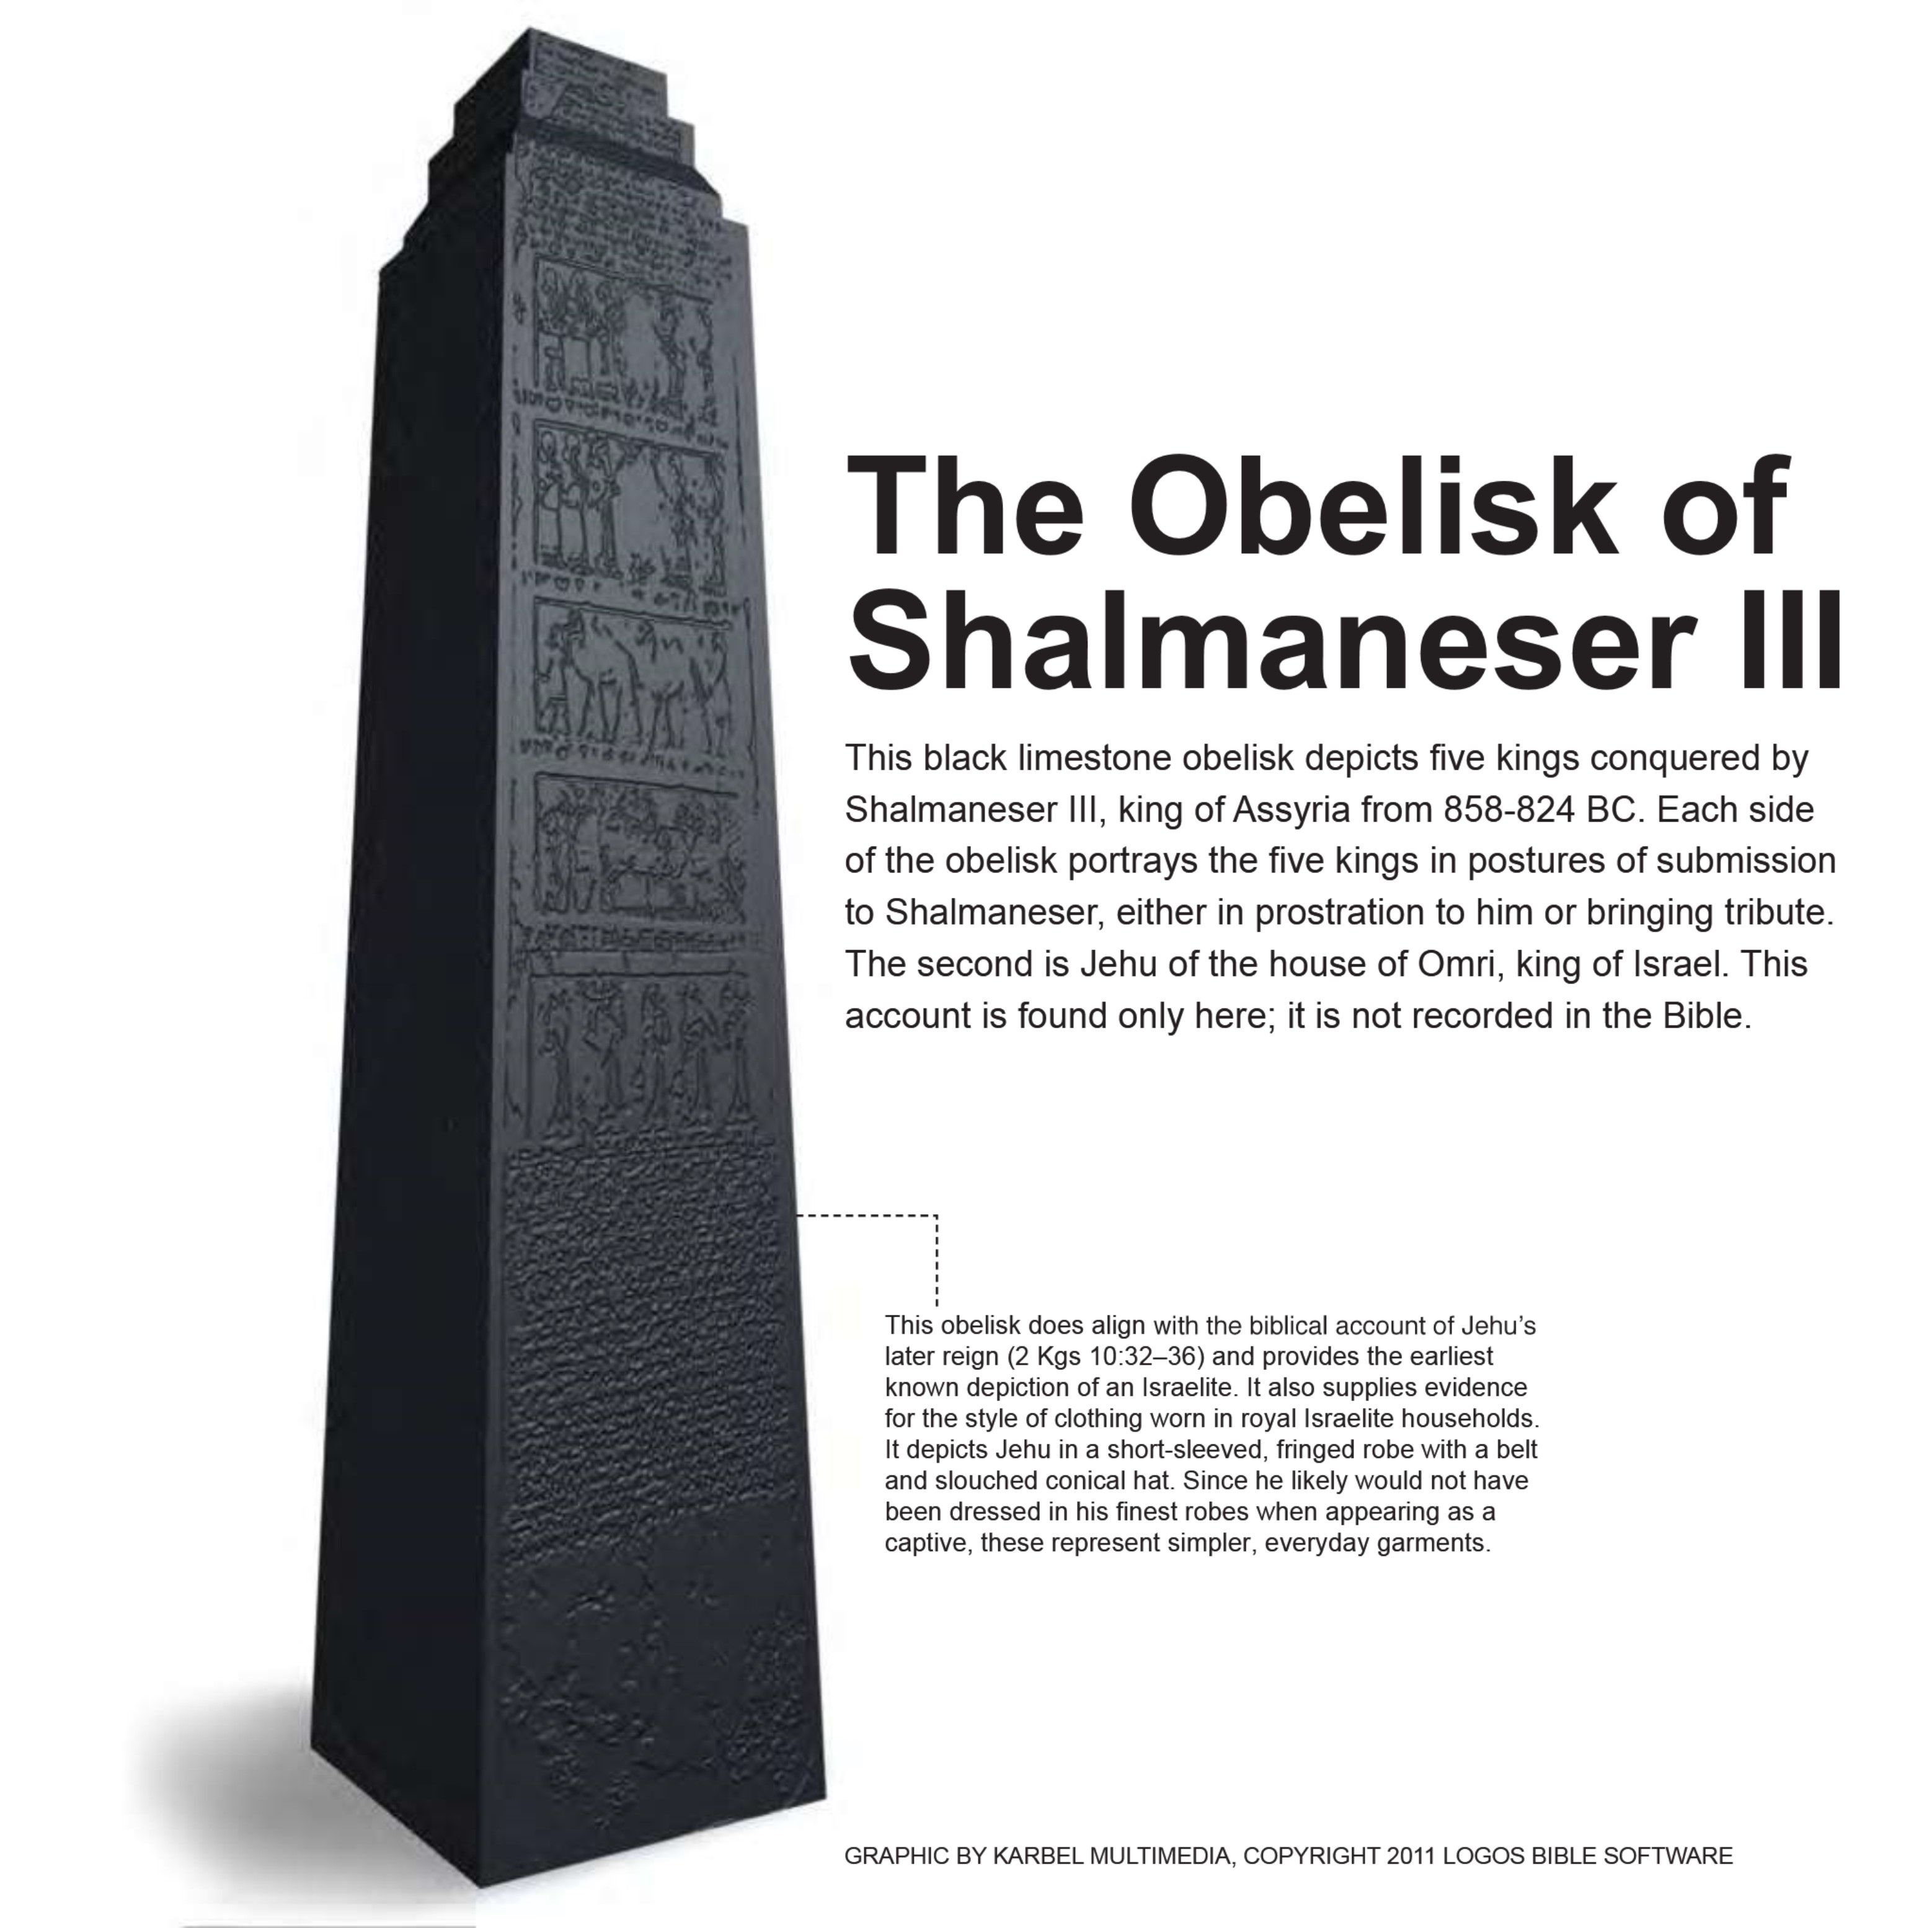 This black limestone obelisk depicts five kings conquered by Shalmaneser III, king of Assyria from 858–824 BC. Each side of the obelisk portrays the five kings in postures of submission to Shalmaneser, either in prostration to him or bringing tribute. The second is Jehu of the house of Omri, king of Israel. This account is found only here; it is not recorded in the Bible.